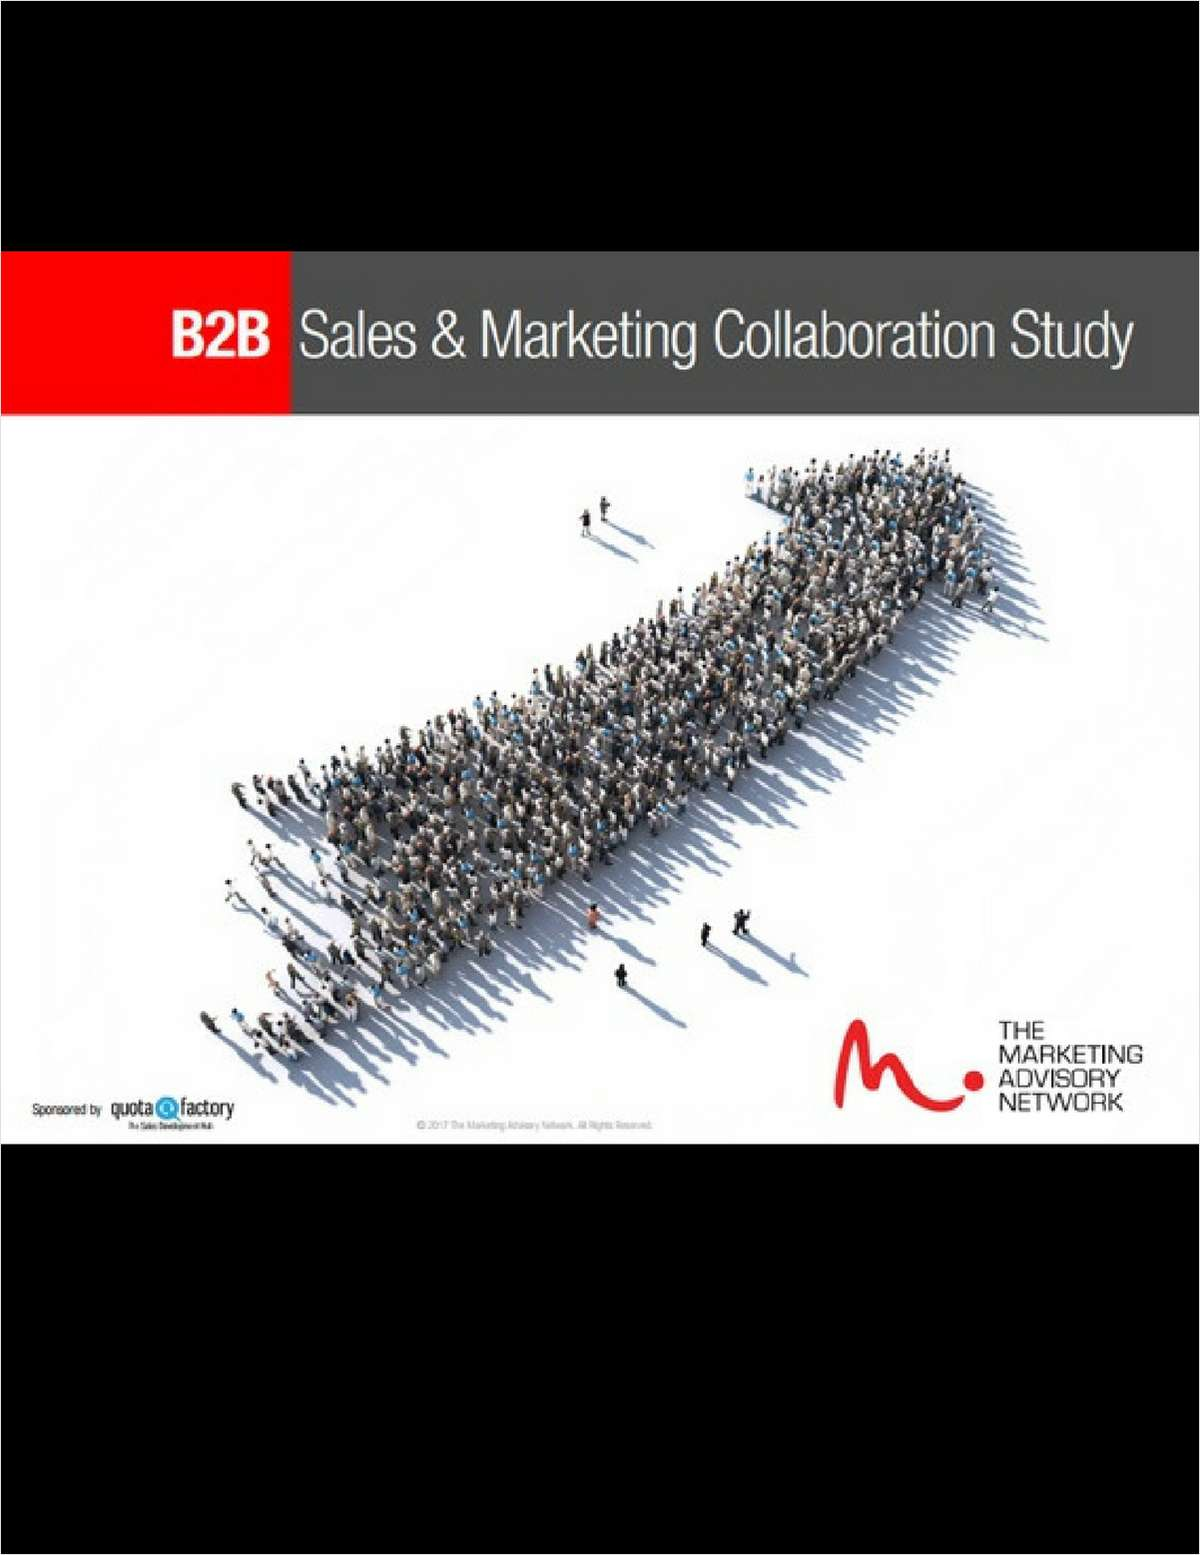 B2B Sales & Marketing Collaboration Study